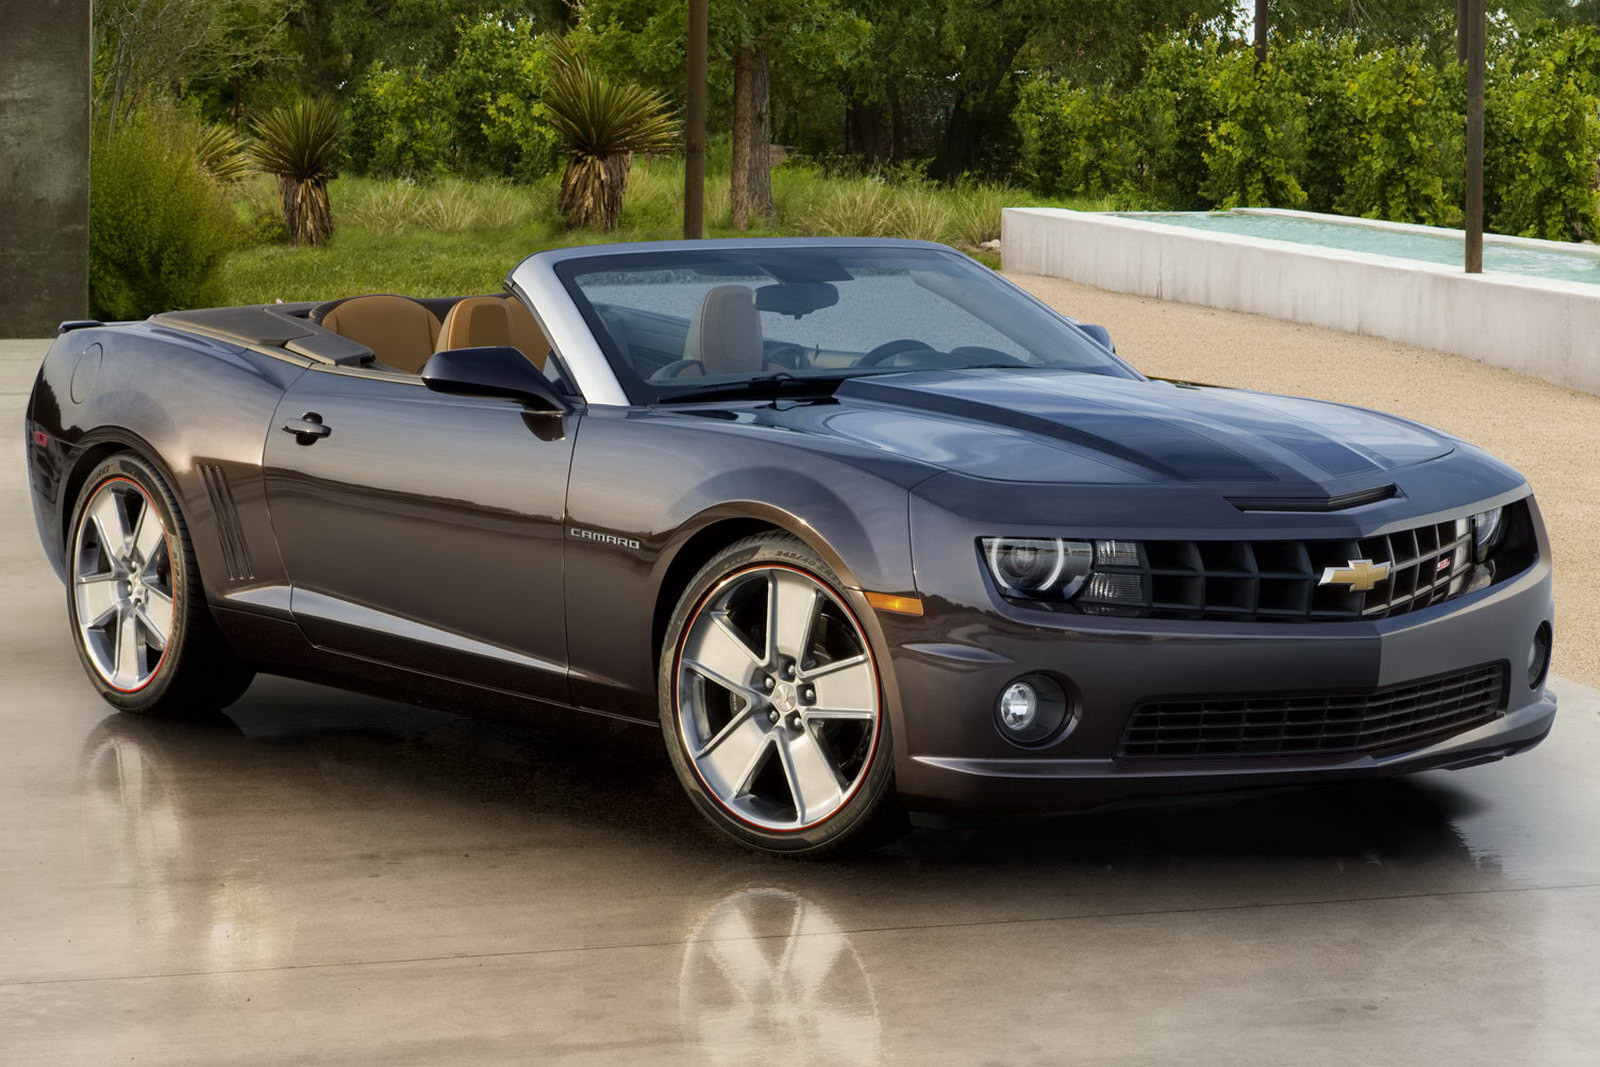 2011 Chevrolet Camaro Convertible Goes to Super Bowl XLV MVP Wallpaper For Background